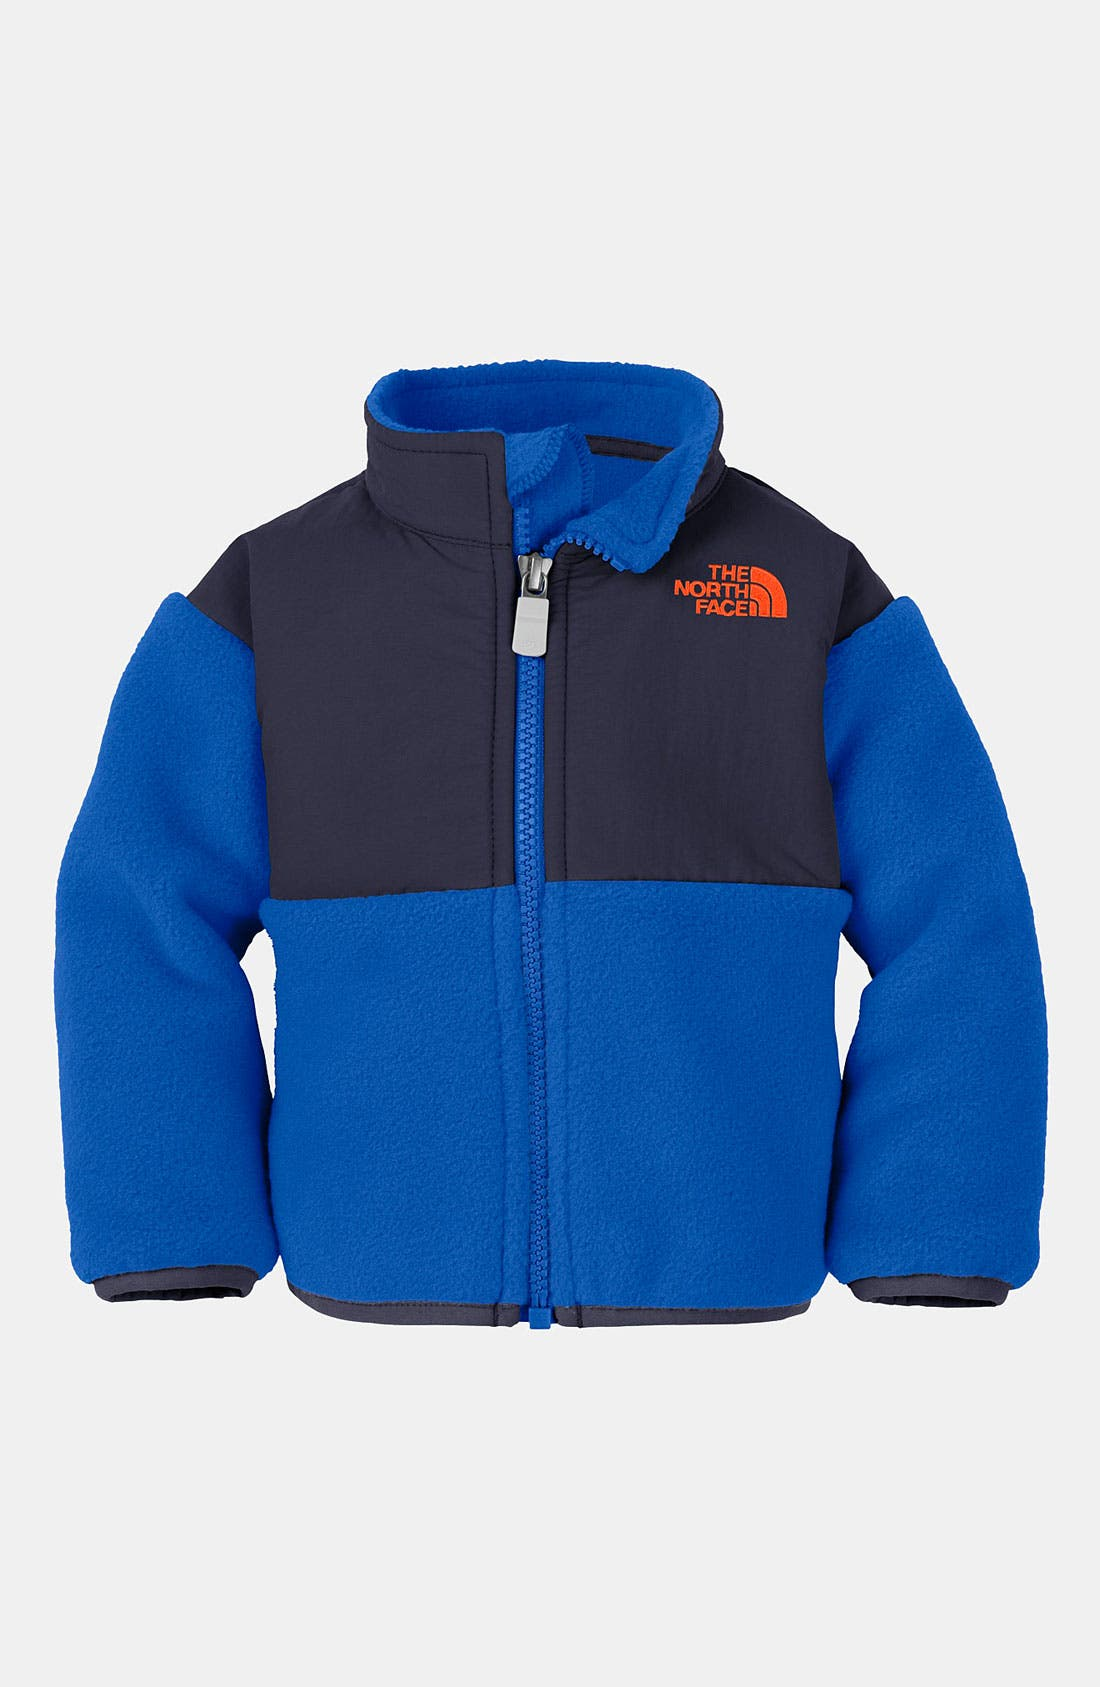 Main Image - The North Face 'Denali' Jacket (Baby)